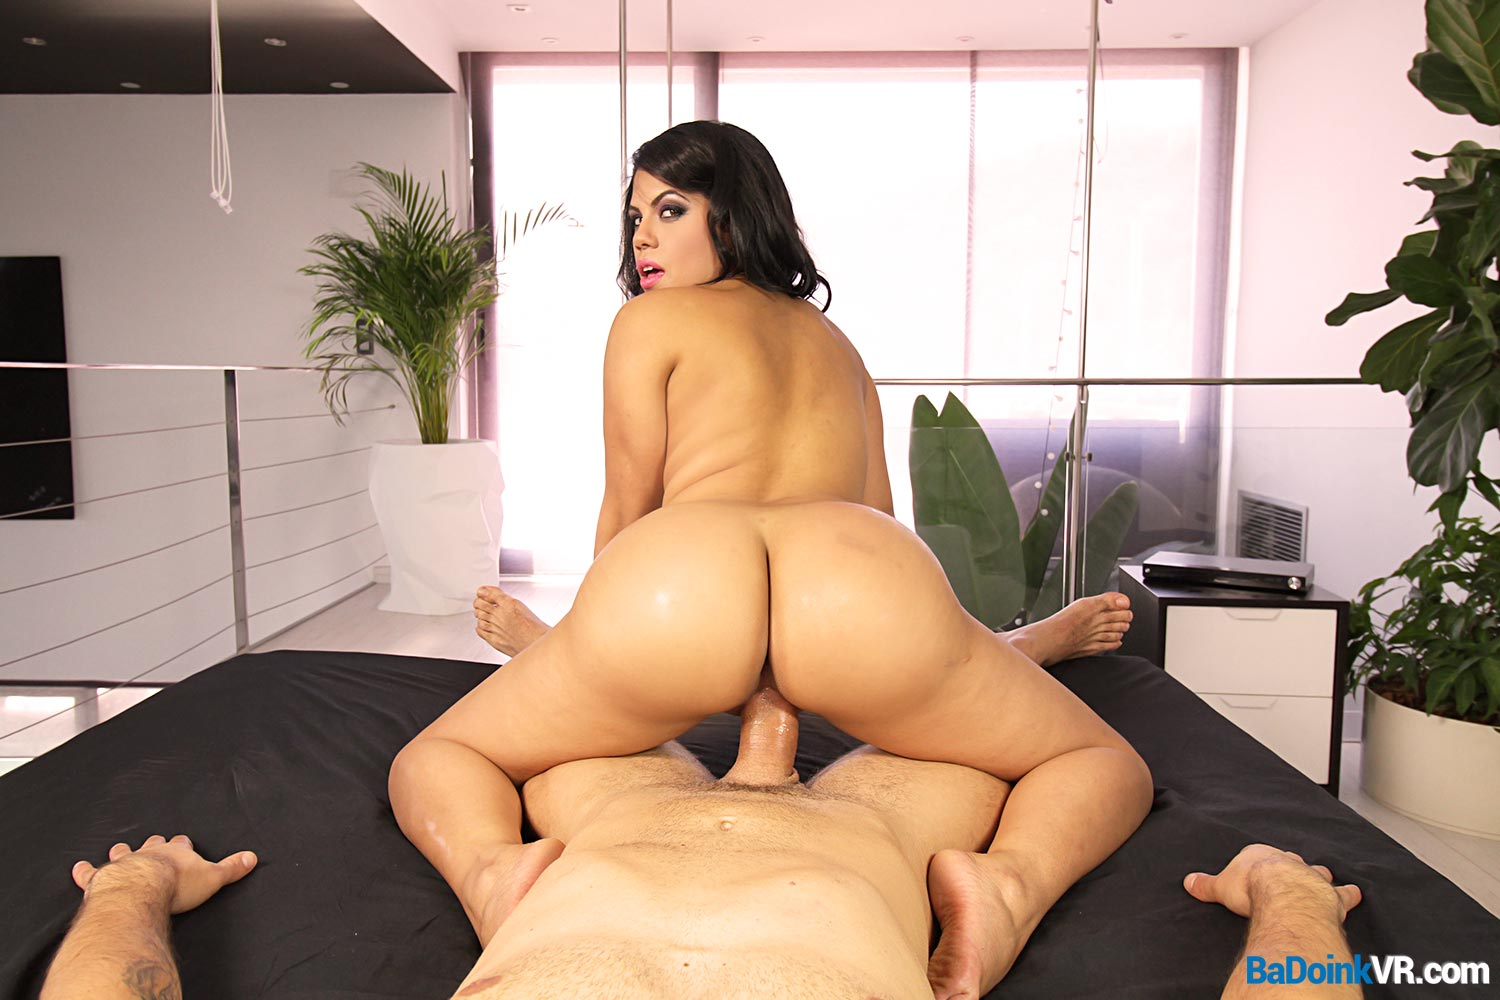 Authoritative Video porno latina consider, that